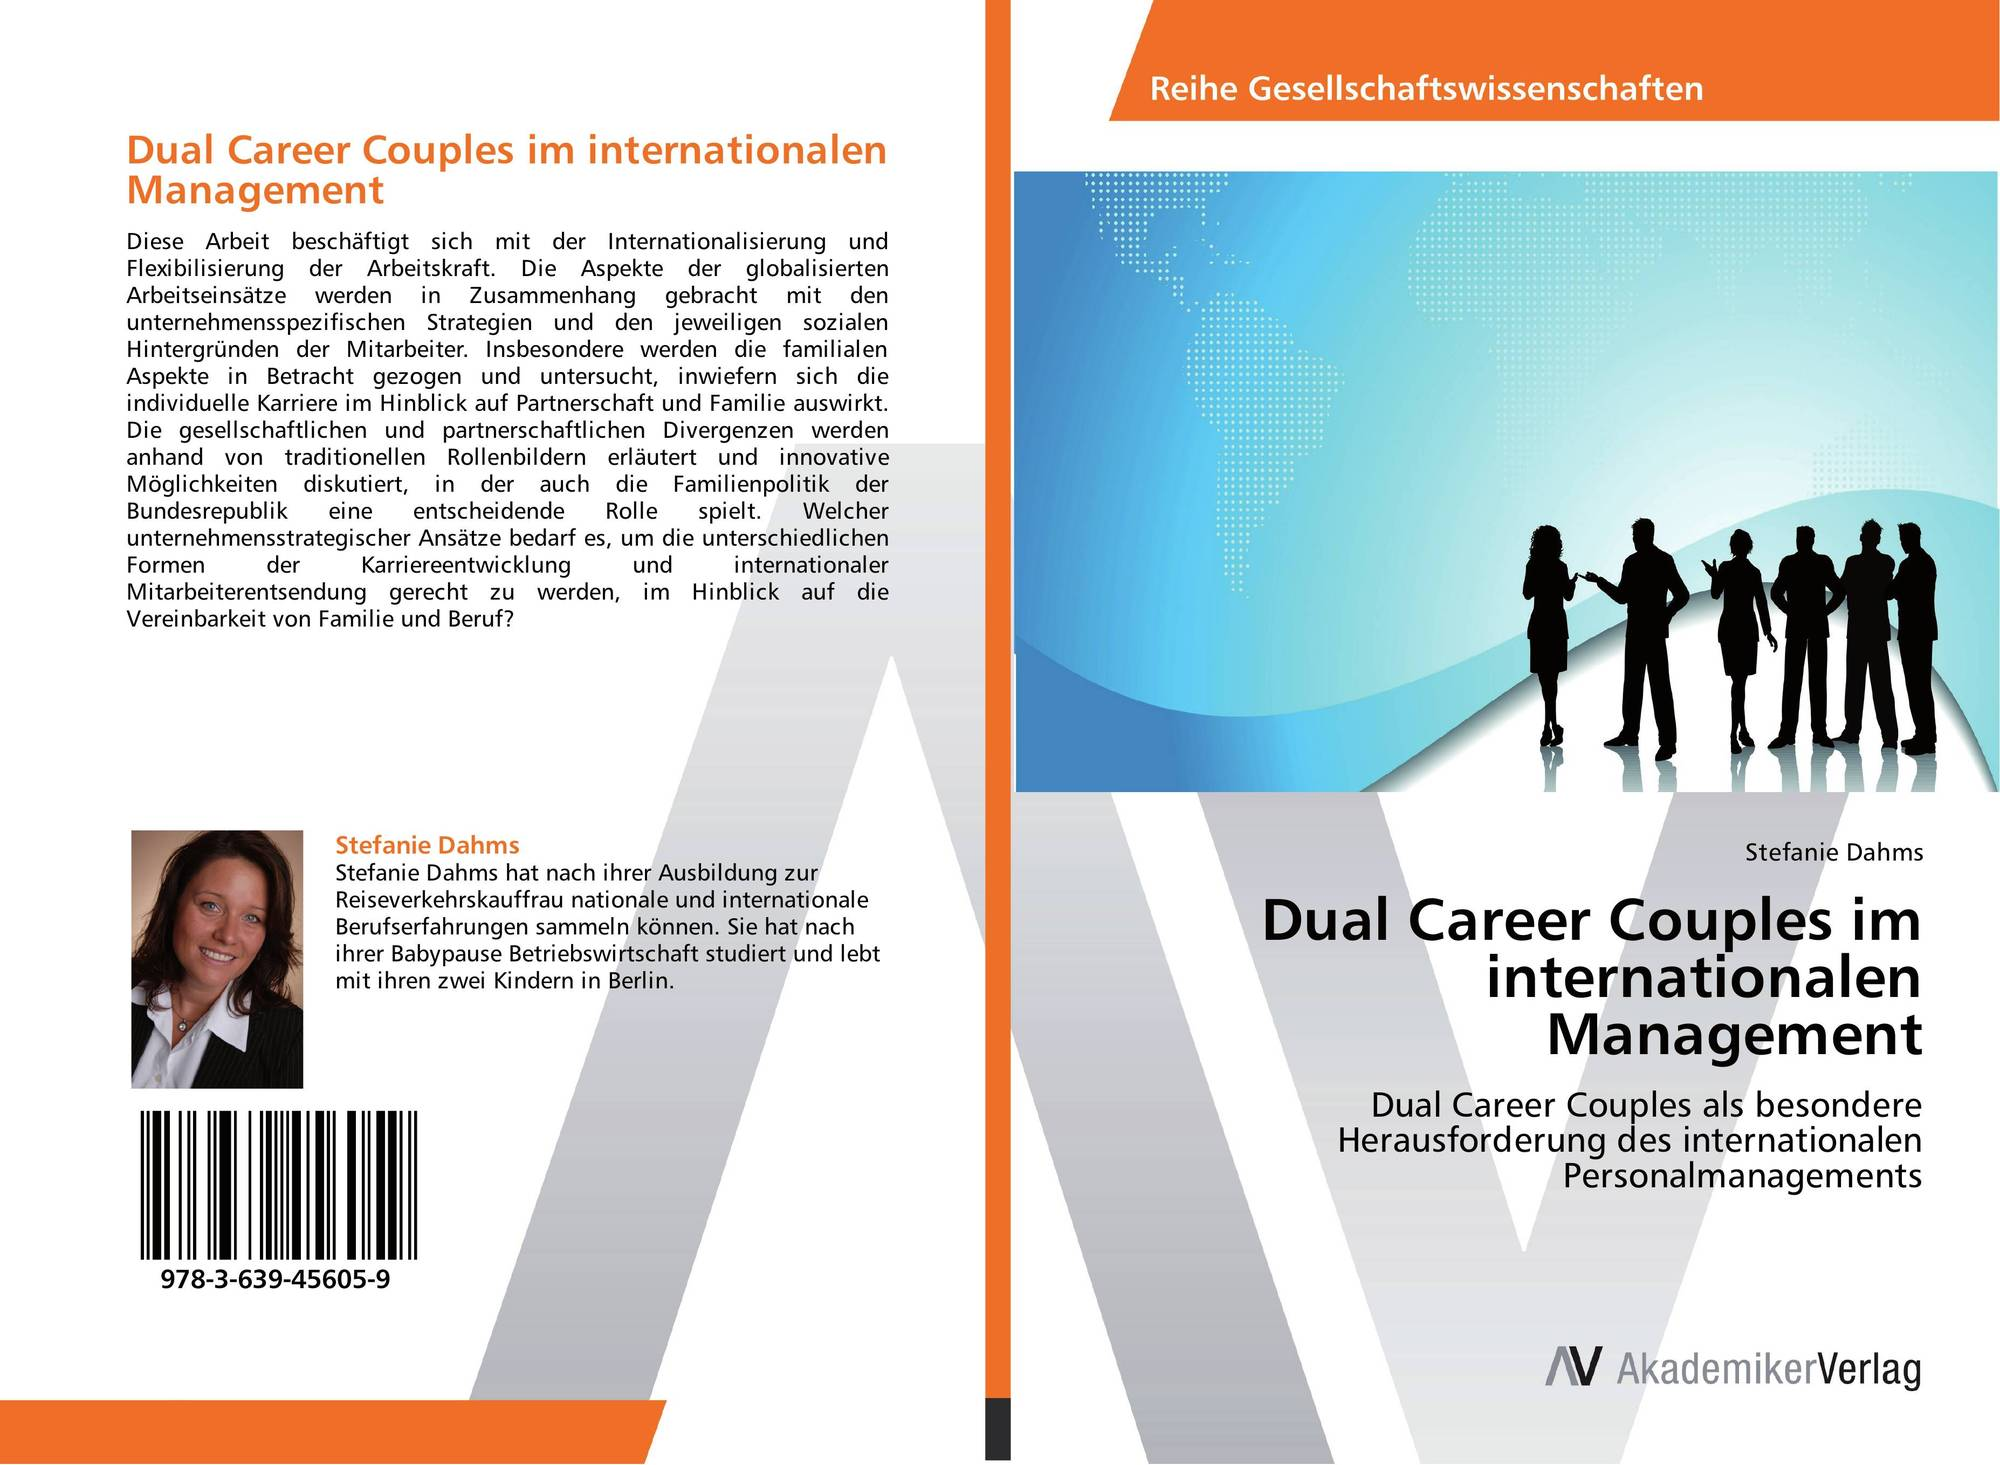 dual career couples and career development The worry amongst dual career couples was balancing career, personal relationship and family responsibilities dual career couple men experience in order to this the career development should be recognized for dual couples at early stages at all times it is wise to involve both partners in.